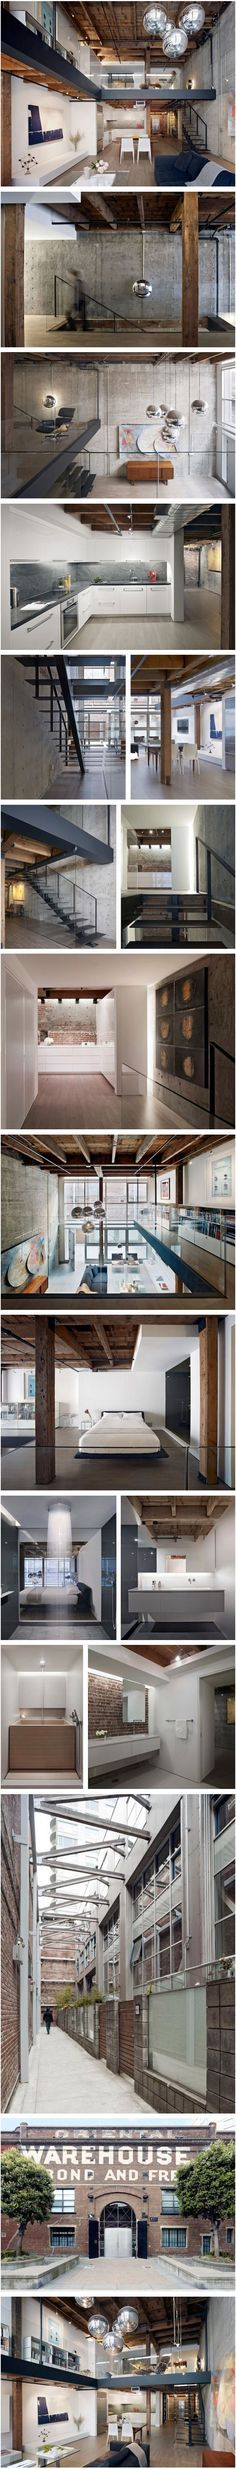 Renovated Warehouse by Edmonds Lee Architects Great mix of precast concrete and timber